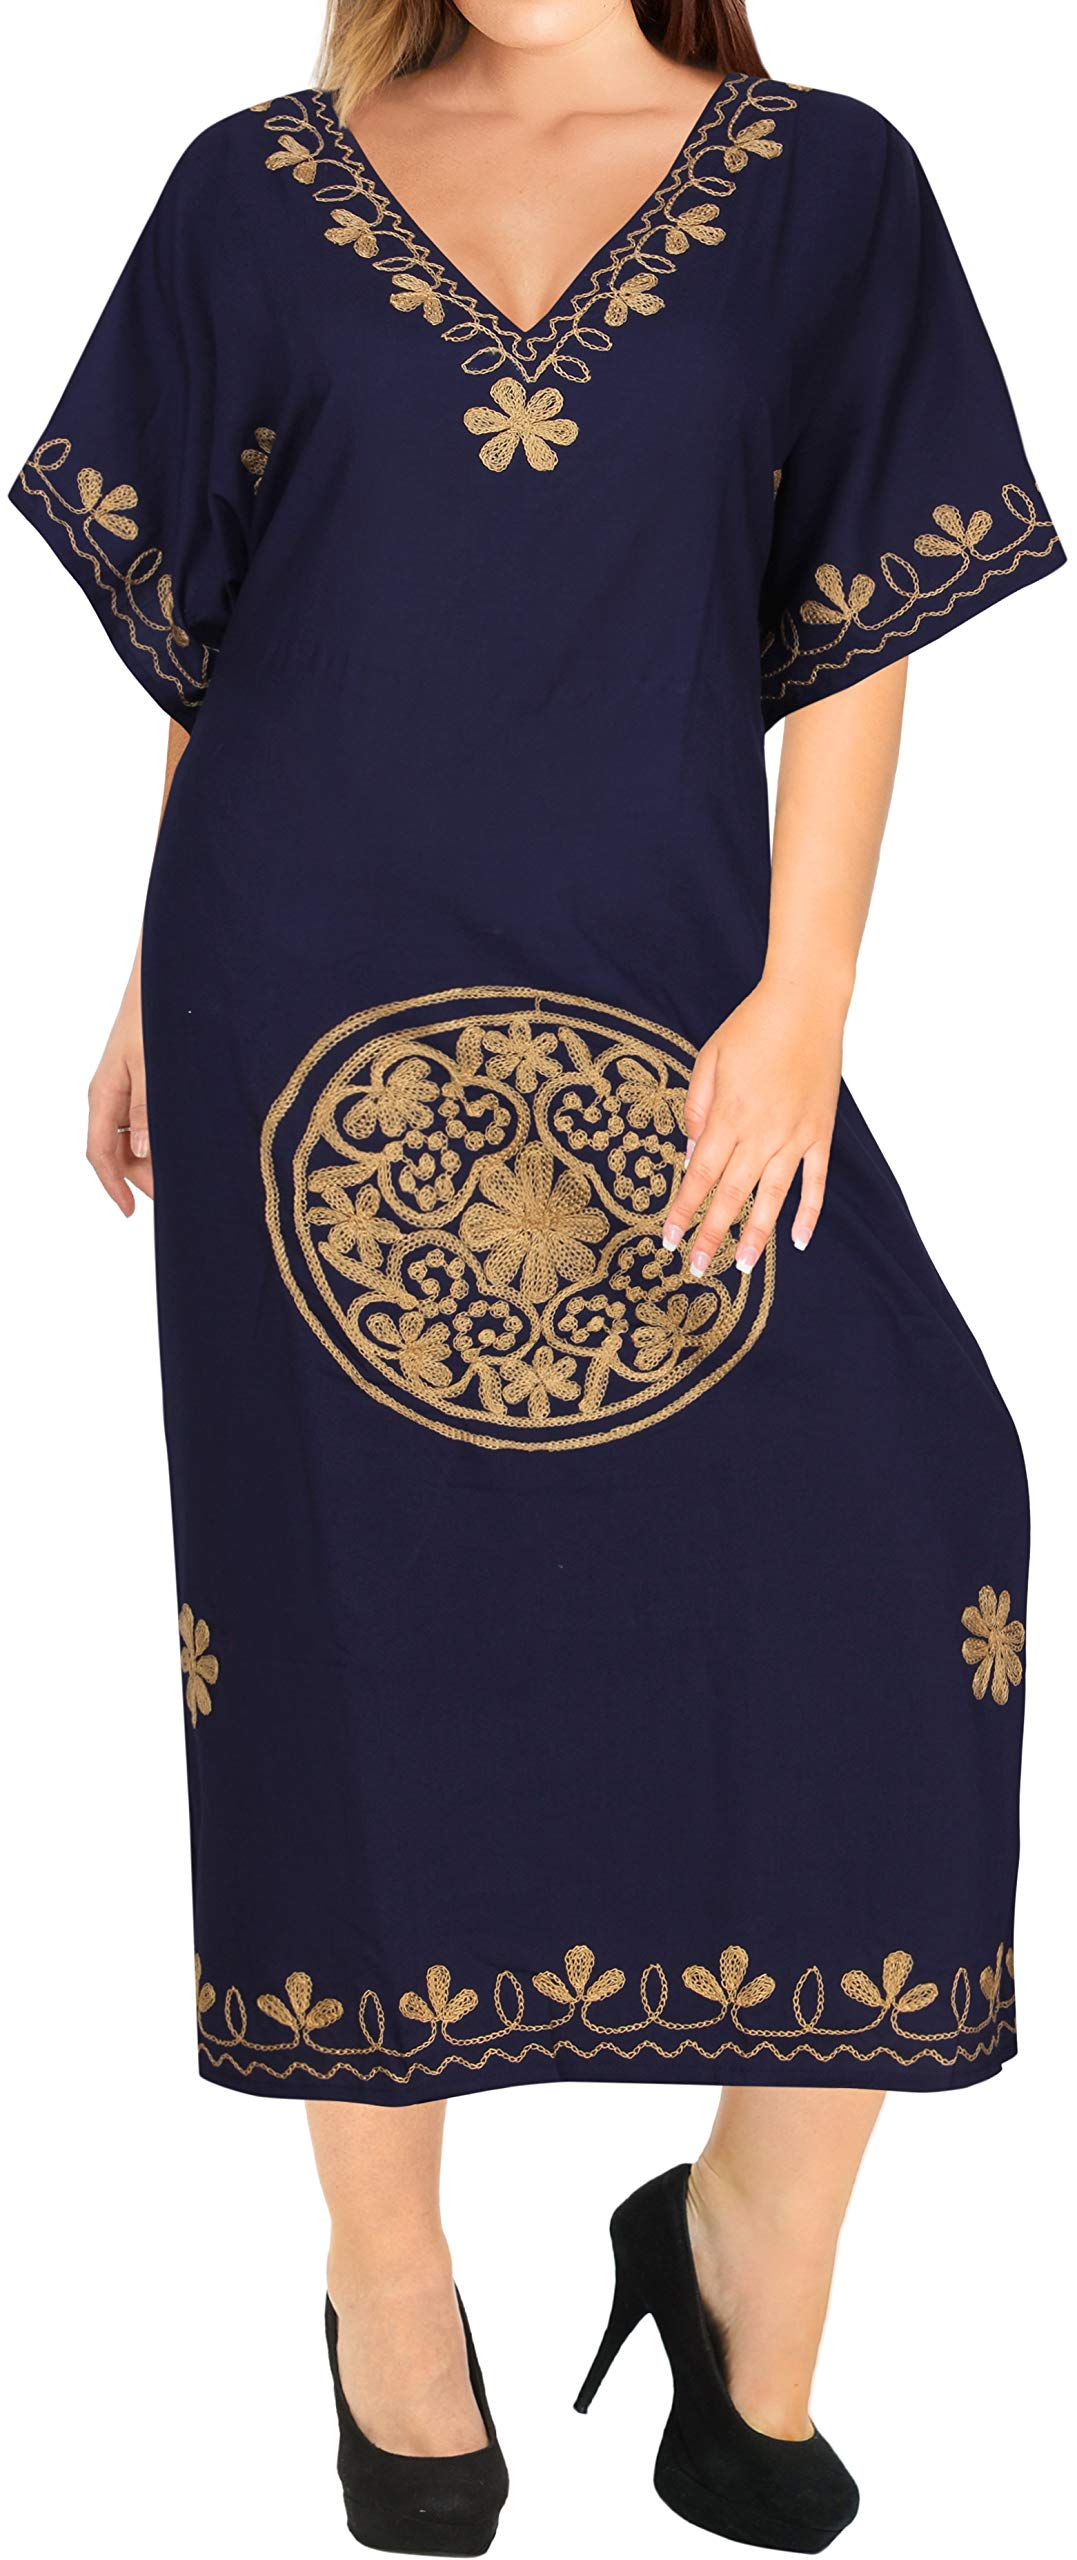 LA LEELA Women's Long Caftan Swimsuit Cover Ups Night Casual Dress Embroidered